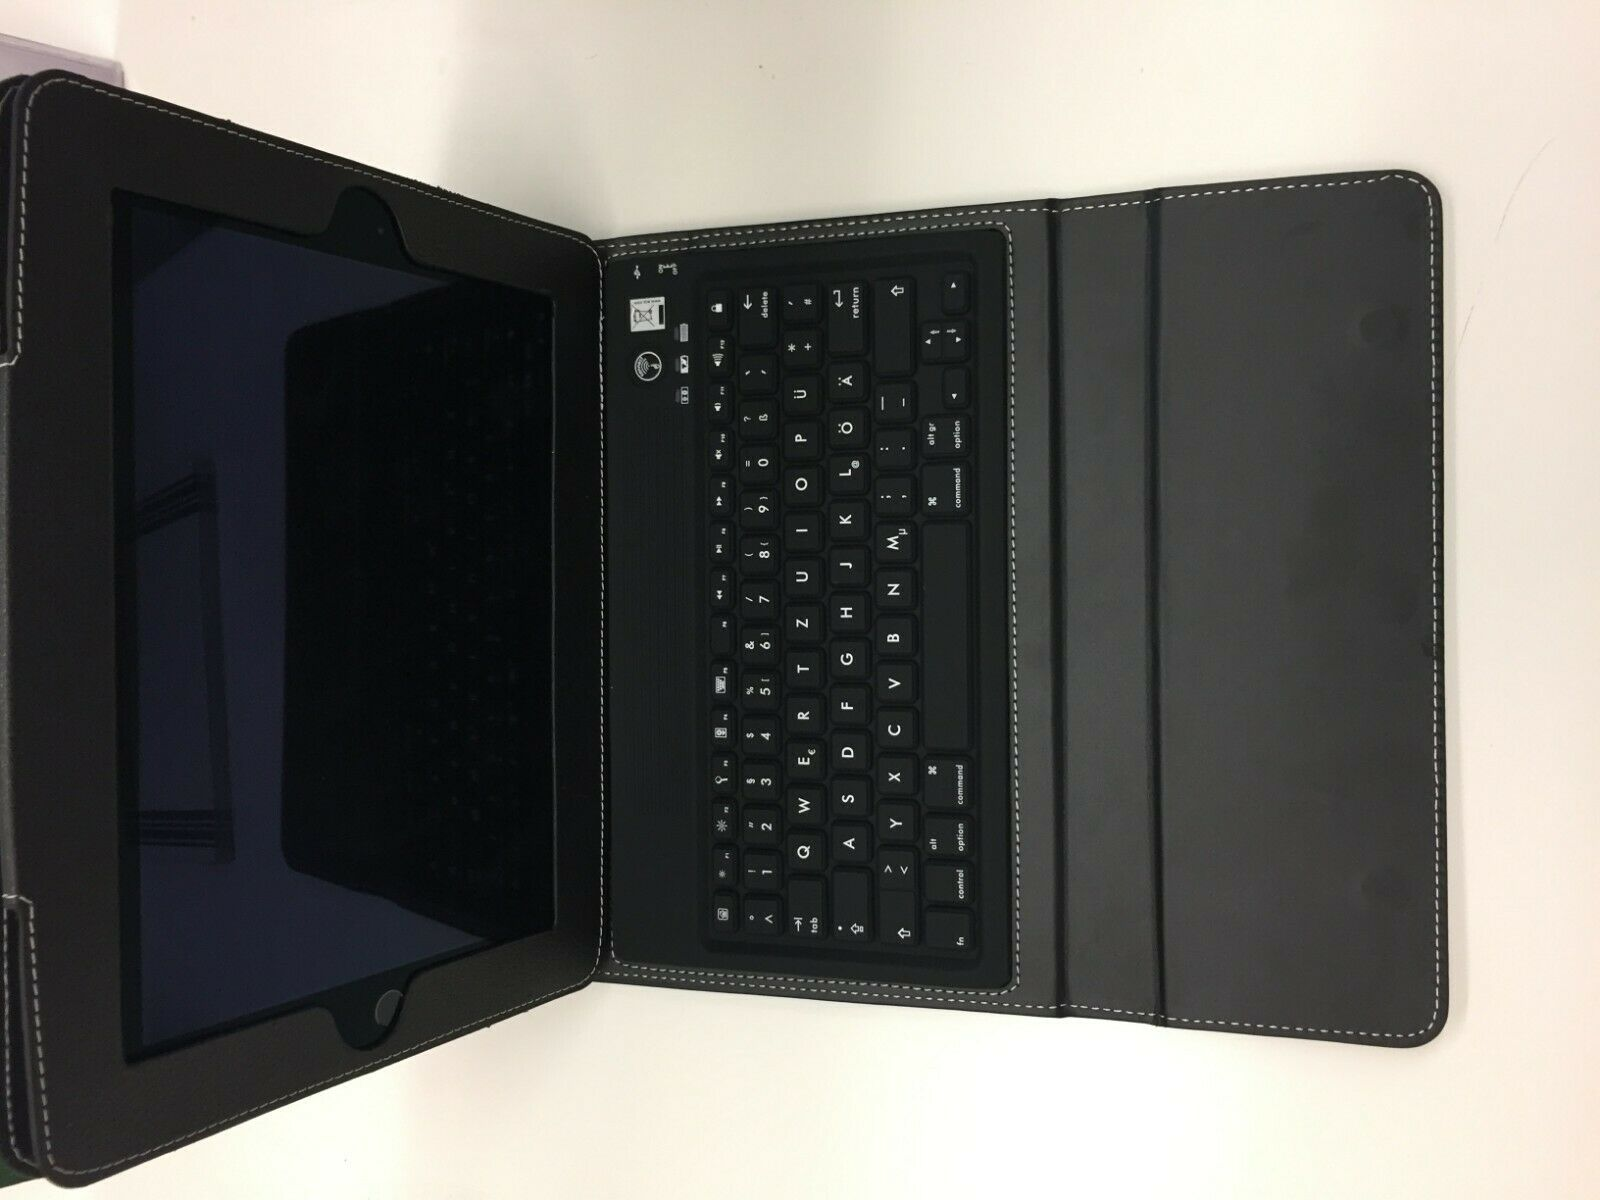 "DEUTSCHE Tastatur für iPad Air 1&2 9,7"" QWERTZ Bluetooth Keyboard Case"